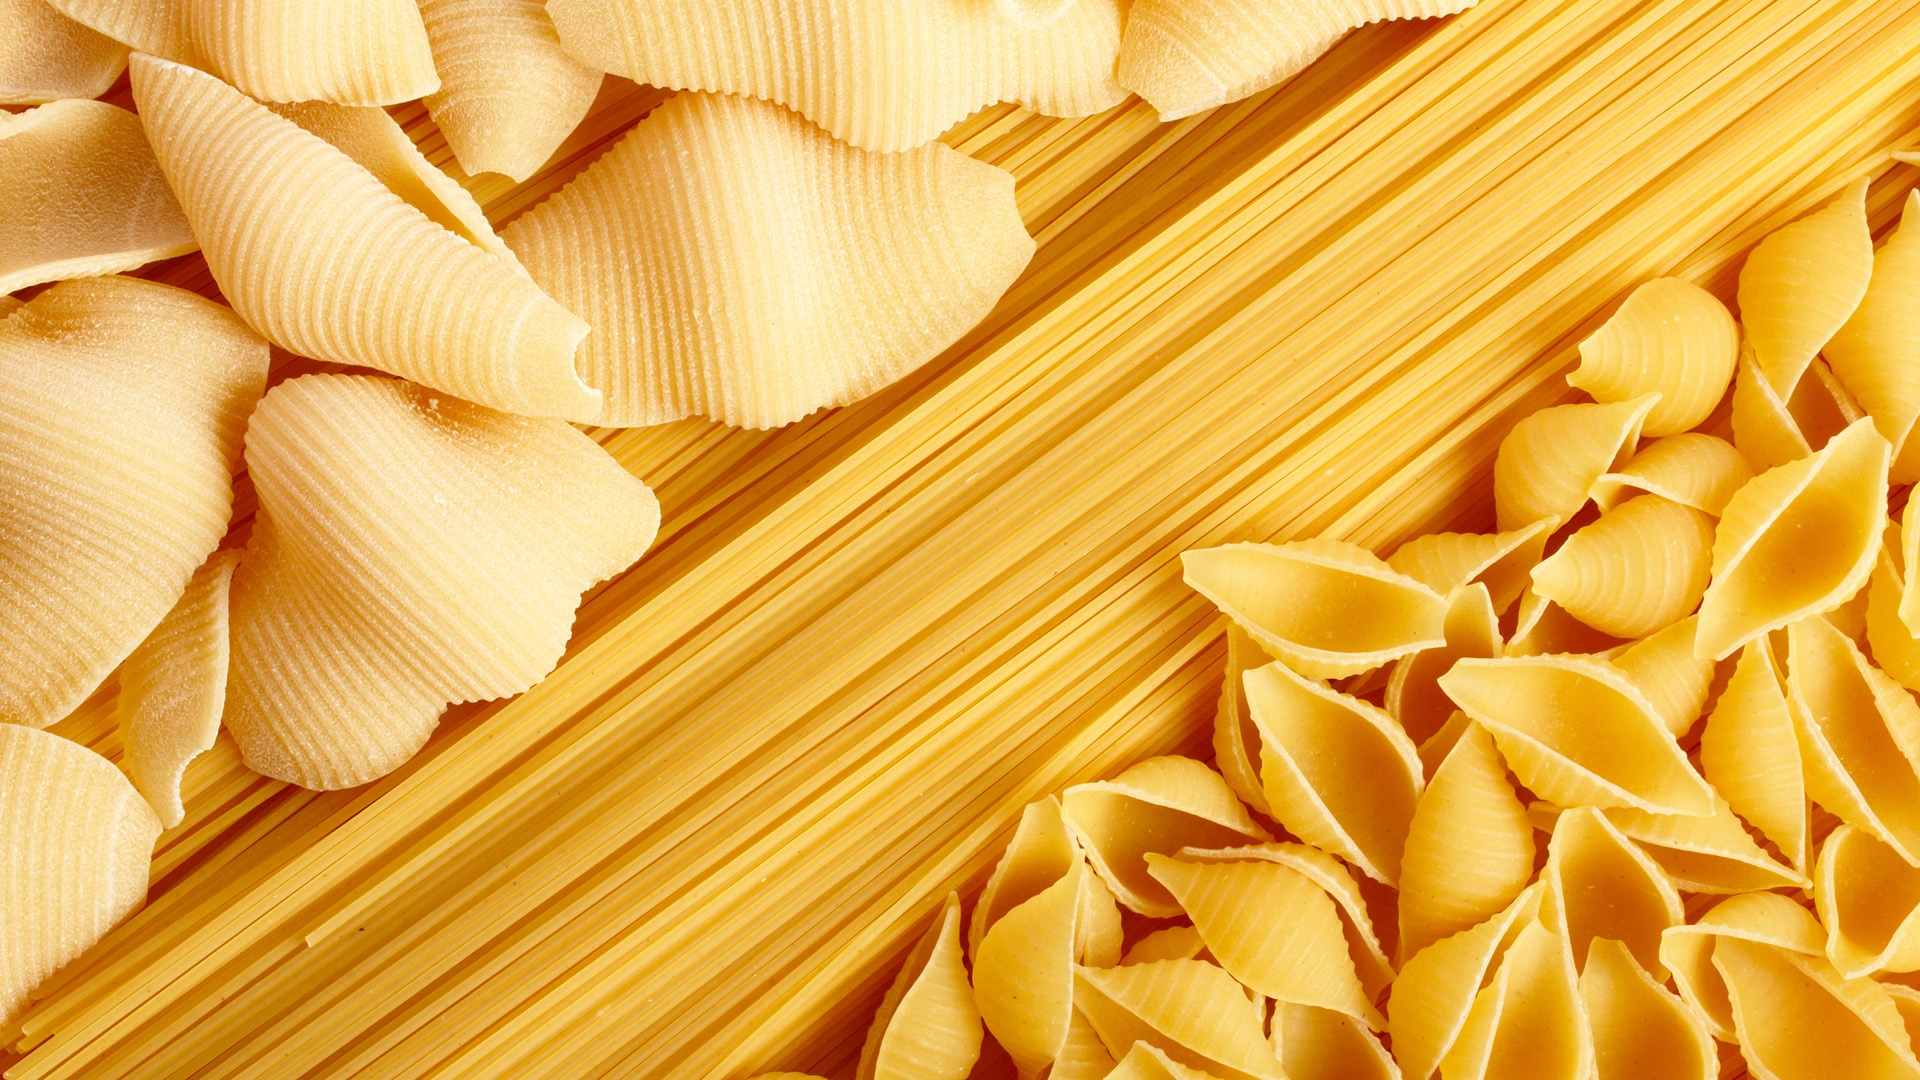 Spaghetti Pasta Widescreen Wallpaper Wallpaper